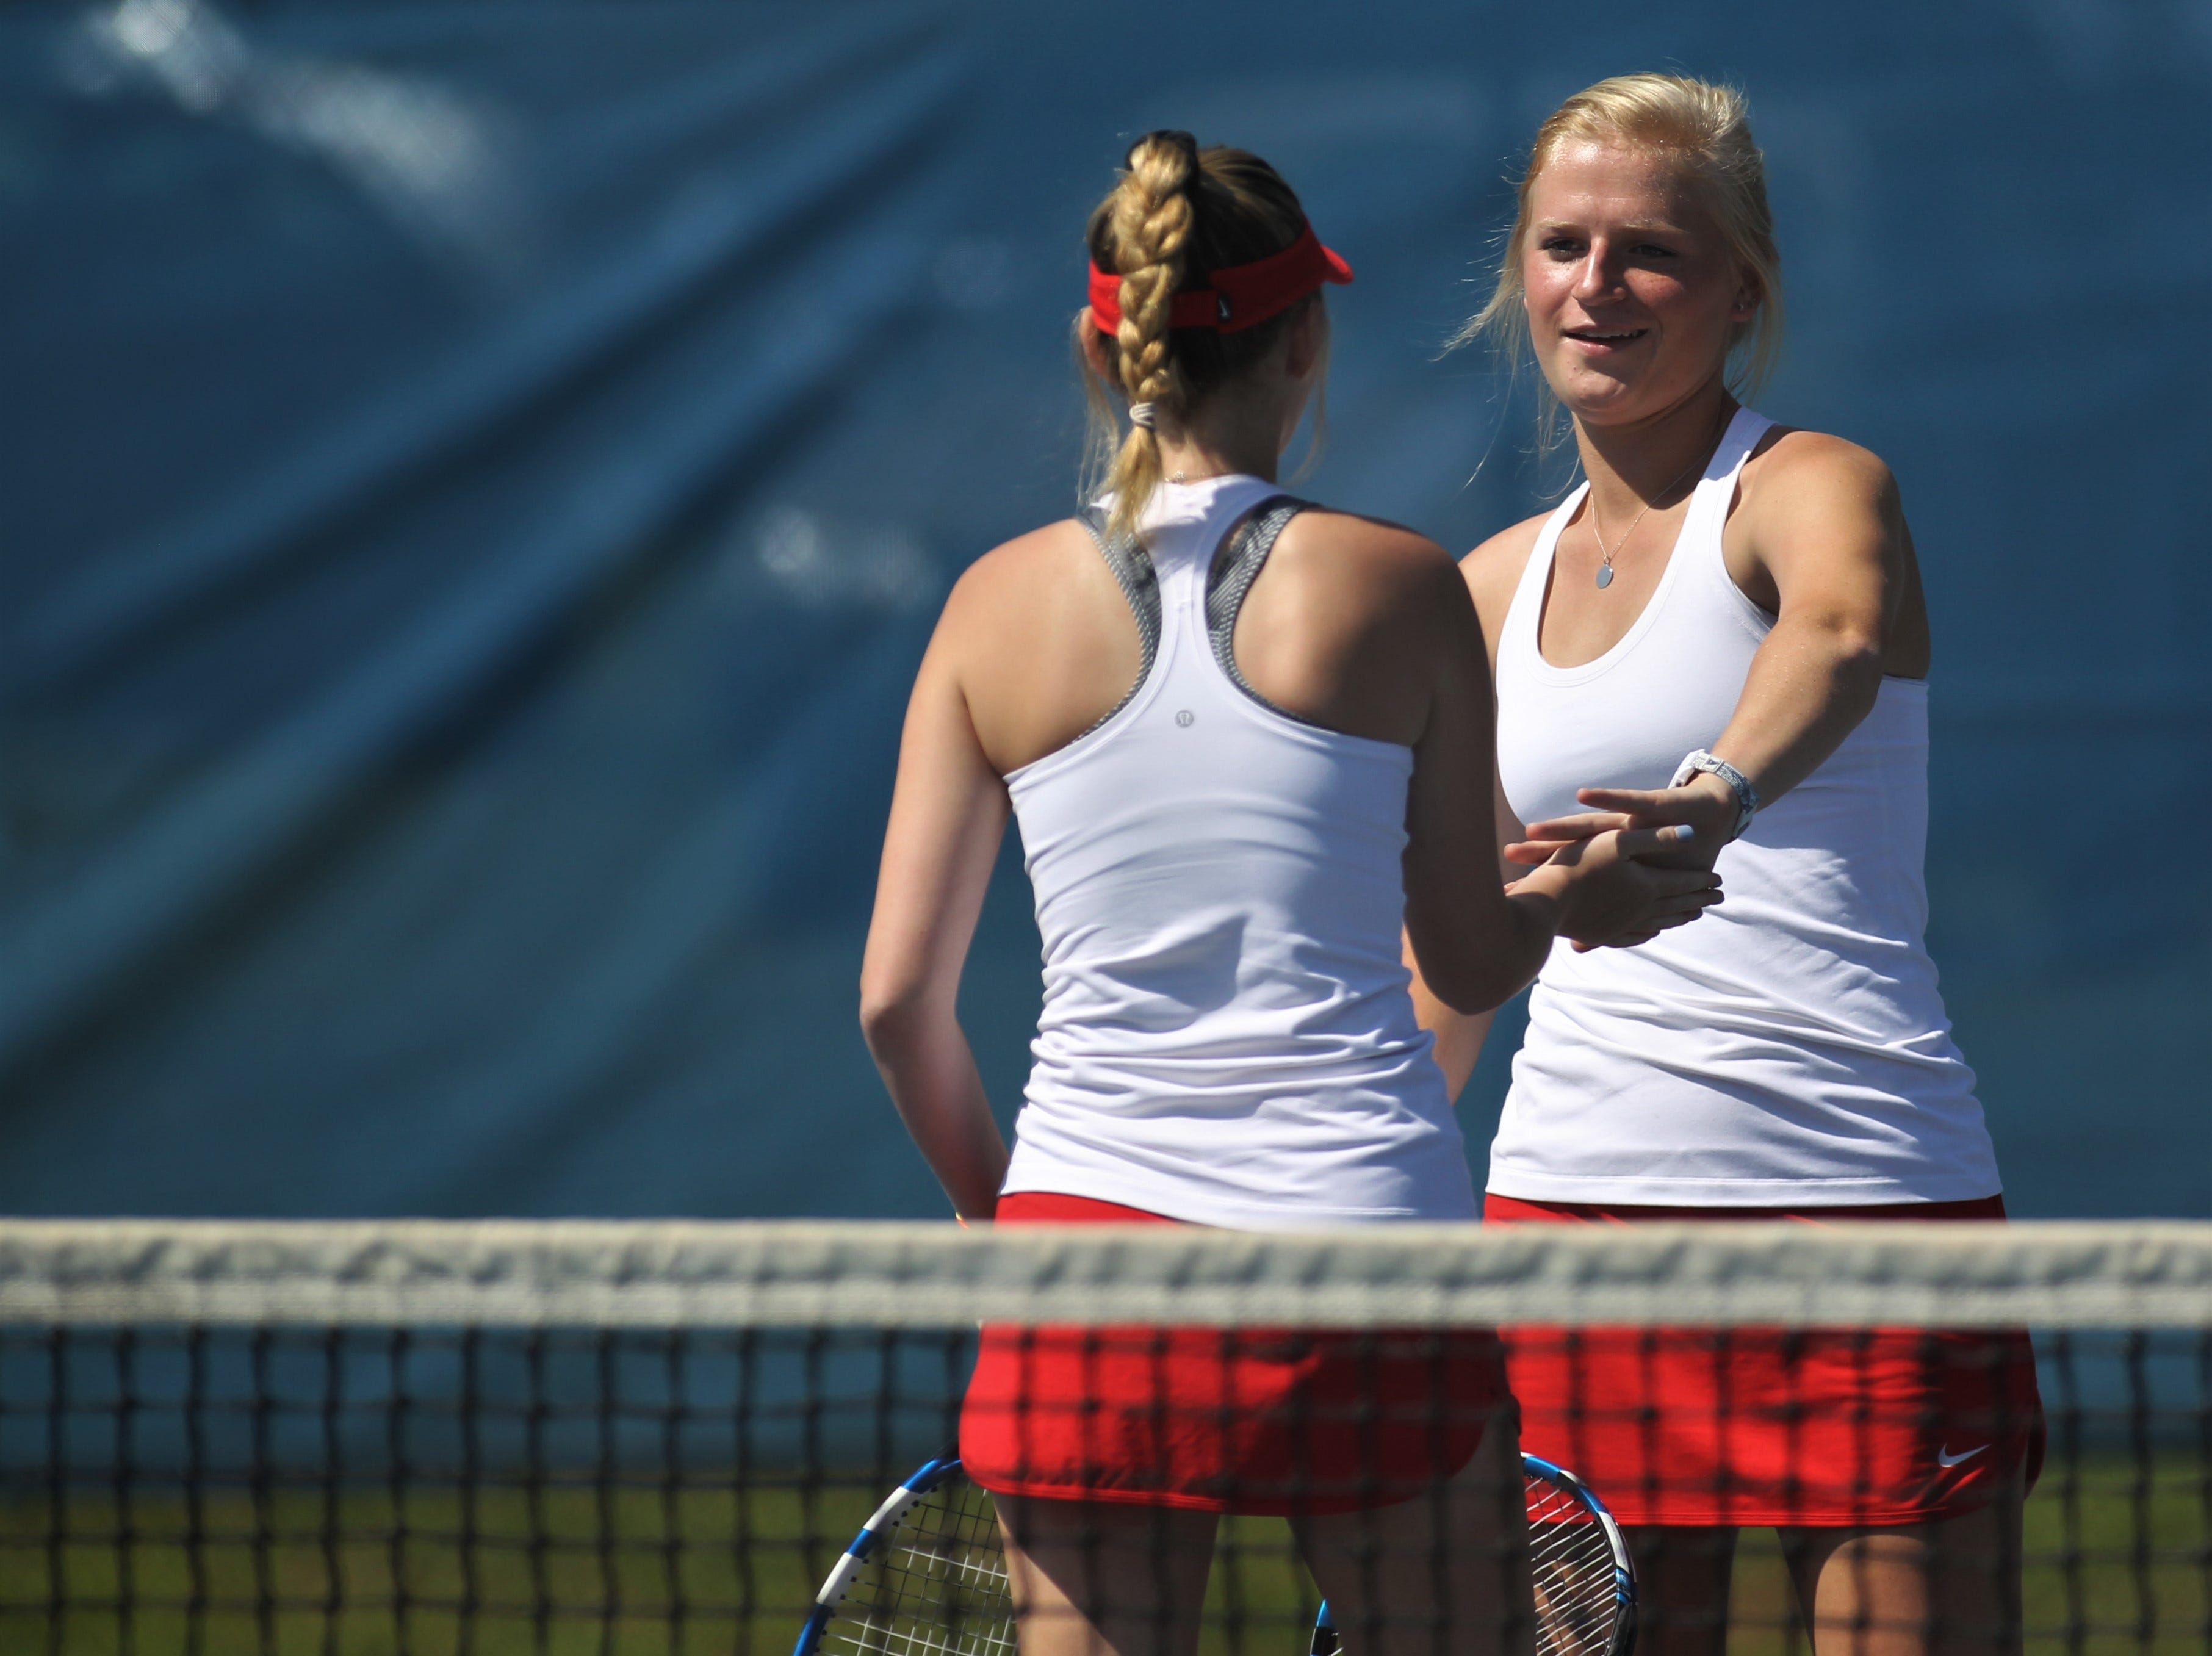 Leon senior Jules Grady congratulates doubles partner Abby Birkmeier after a point during the boys and girls tennis 2019 City Tournament at Tom Brown Park on March 12, 2019.